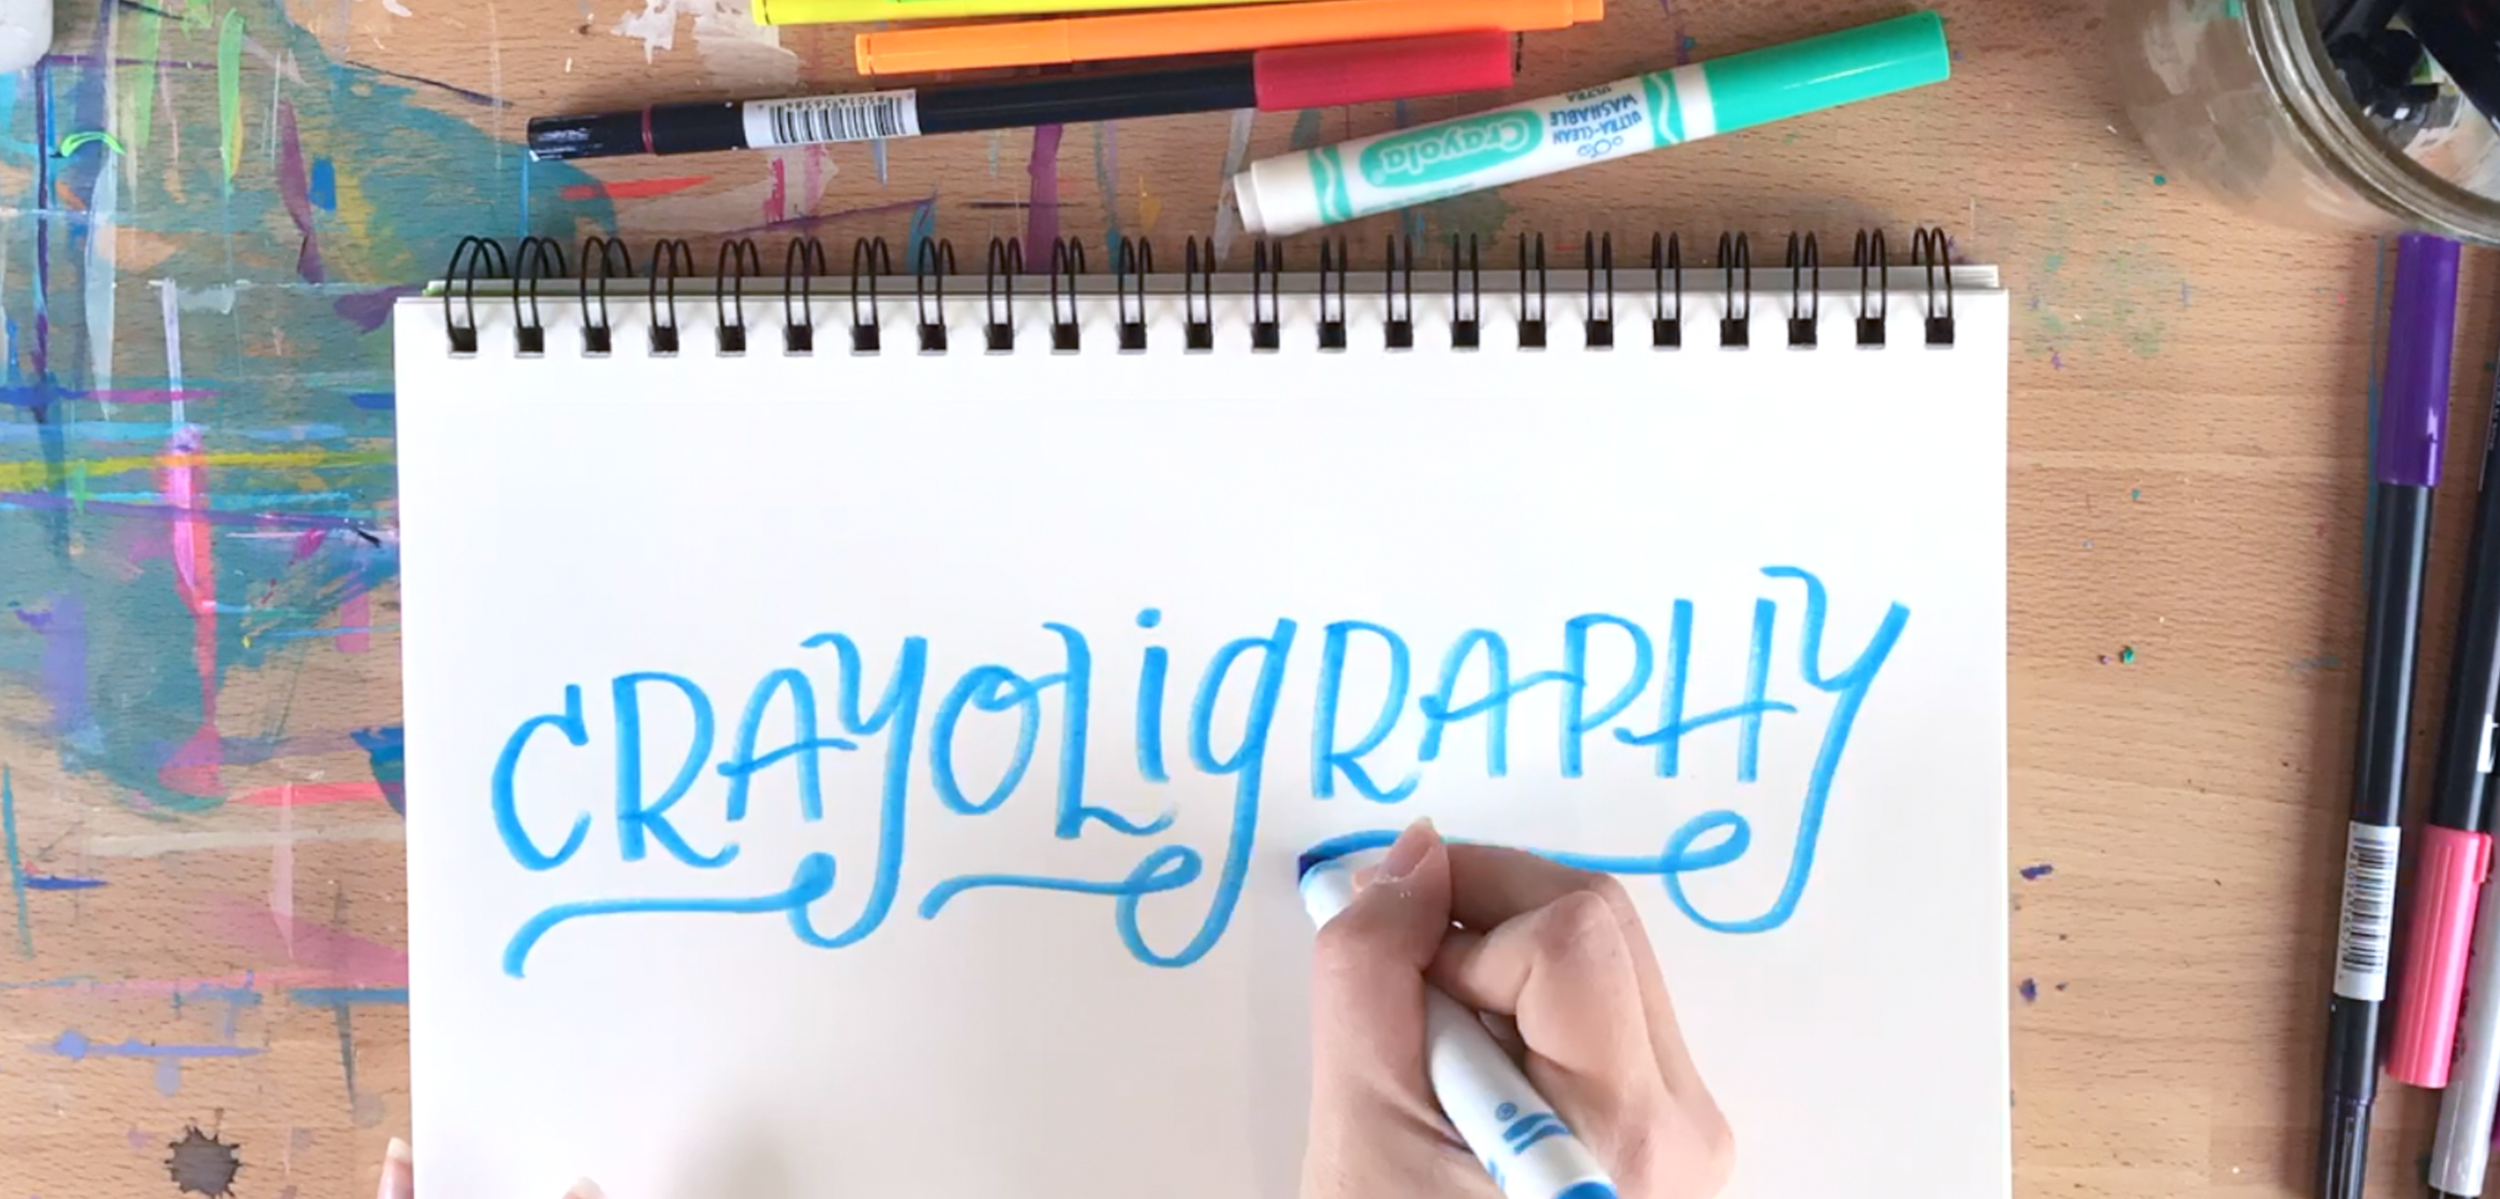 crayoligraphy lettering terms for beginners